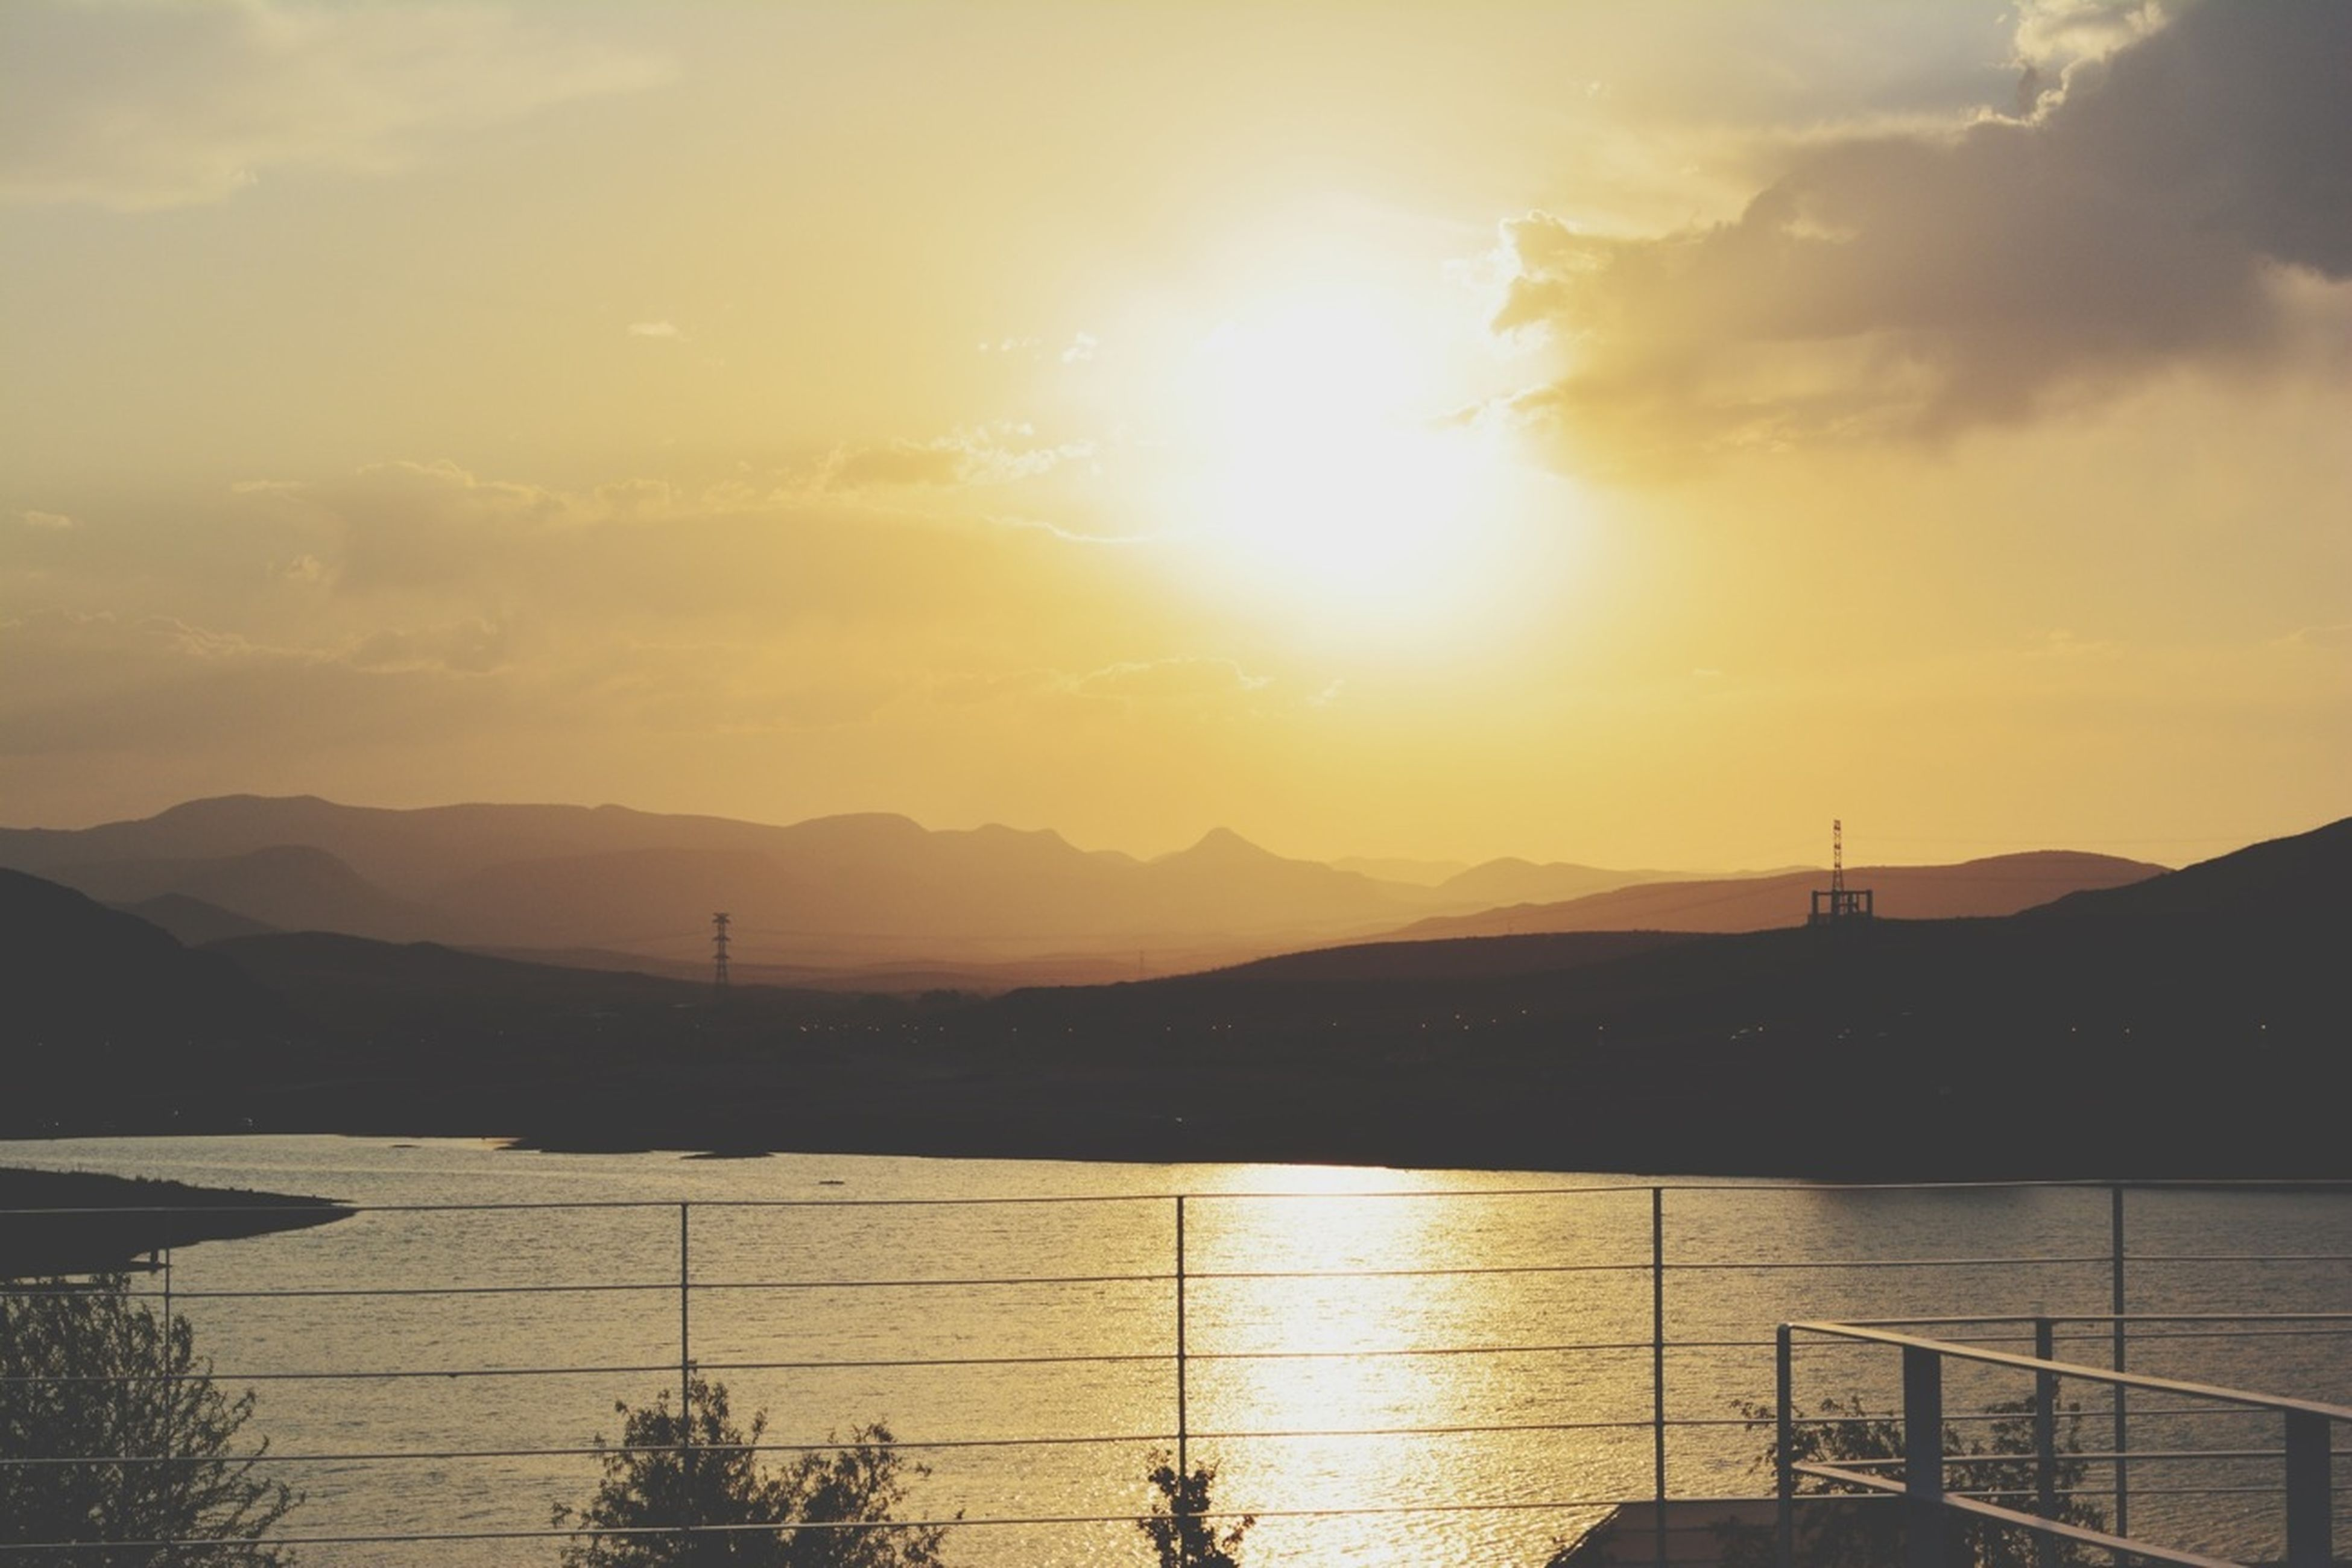 sunset, mountain, sun, water, mountain range, scenics, tranquil scene, silhouette, beauty in nature, tranquility, sky, lake, reflection, nature, sunlight, idyllic, cloud - sky, sunbeam, river, orange color